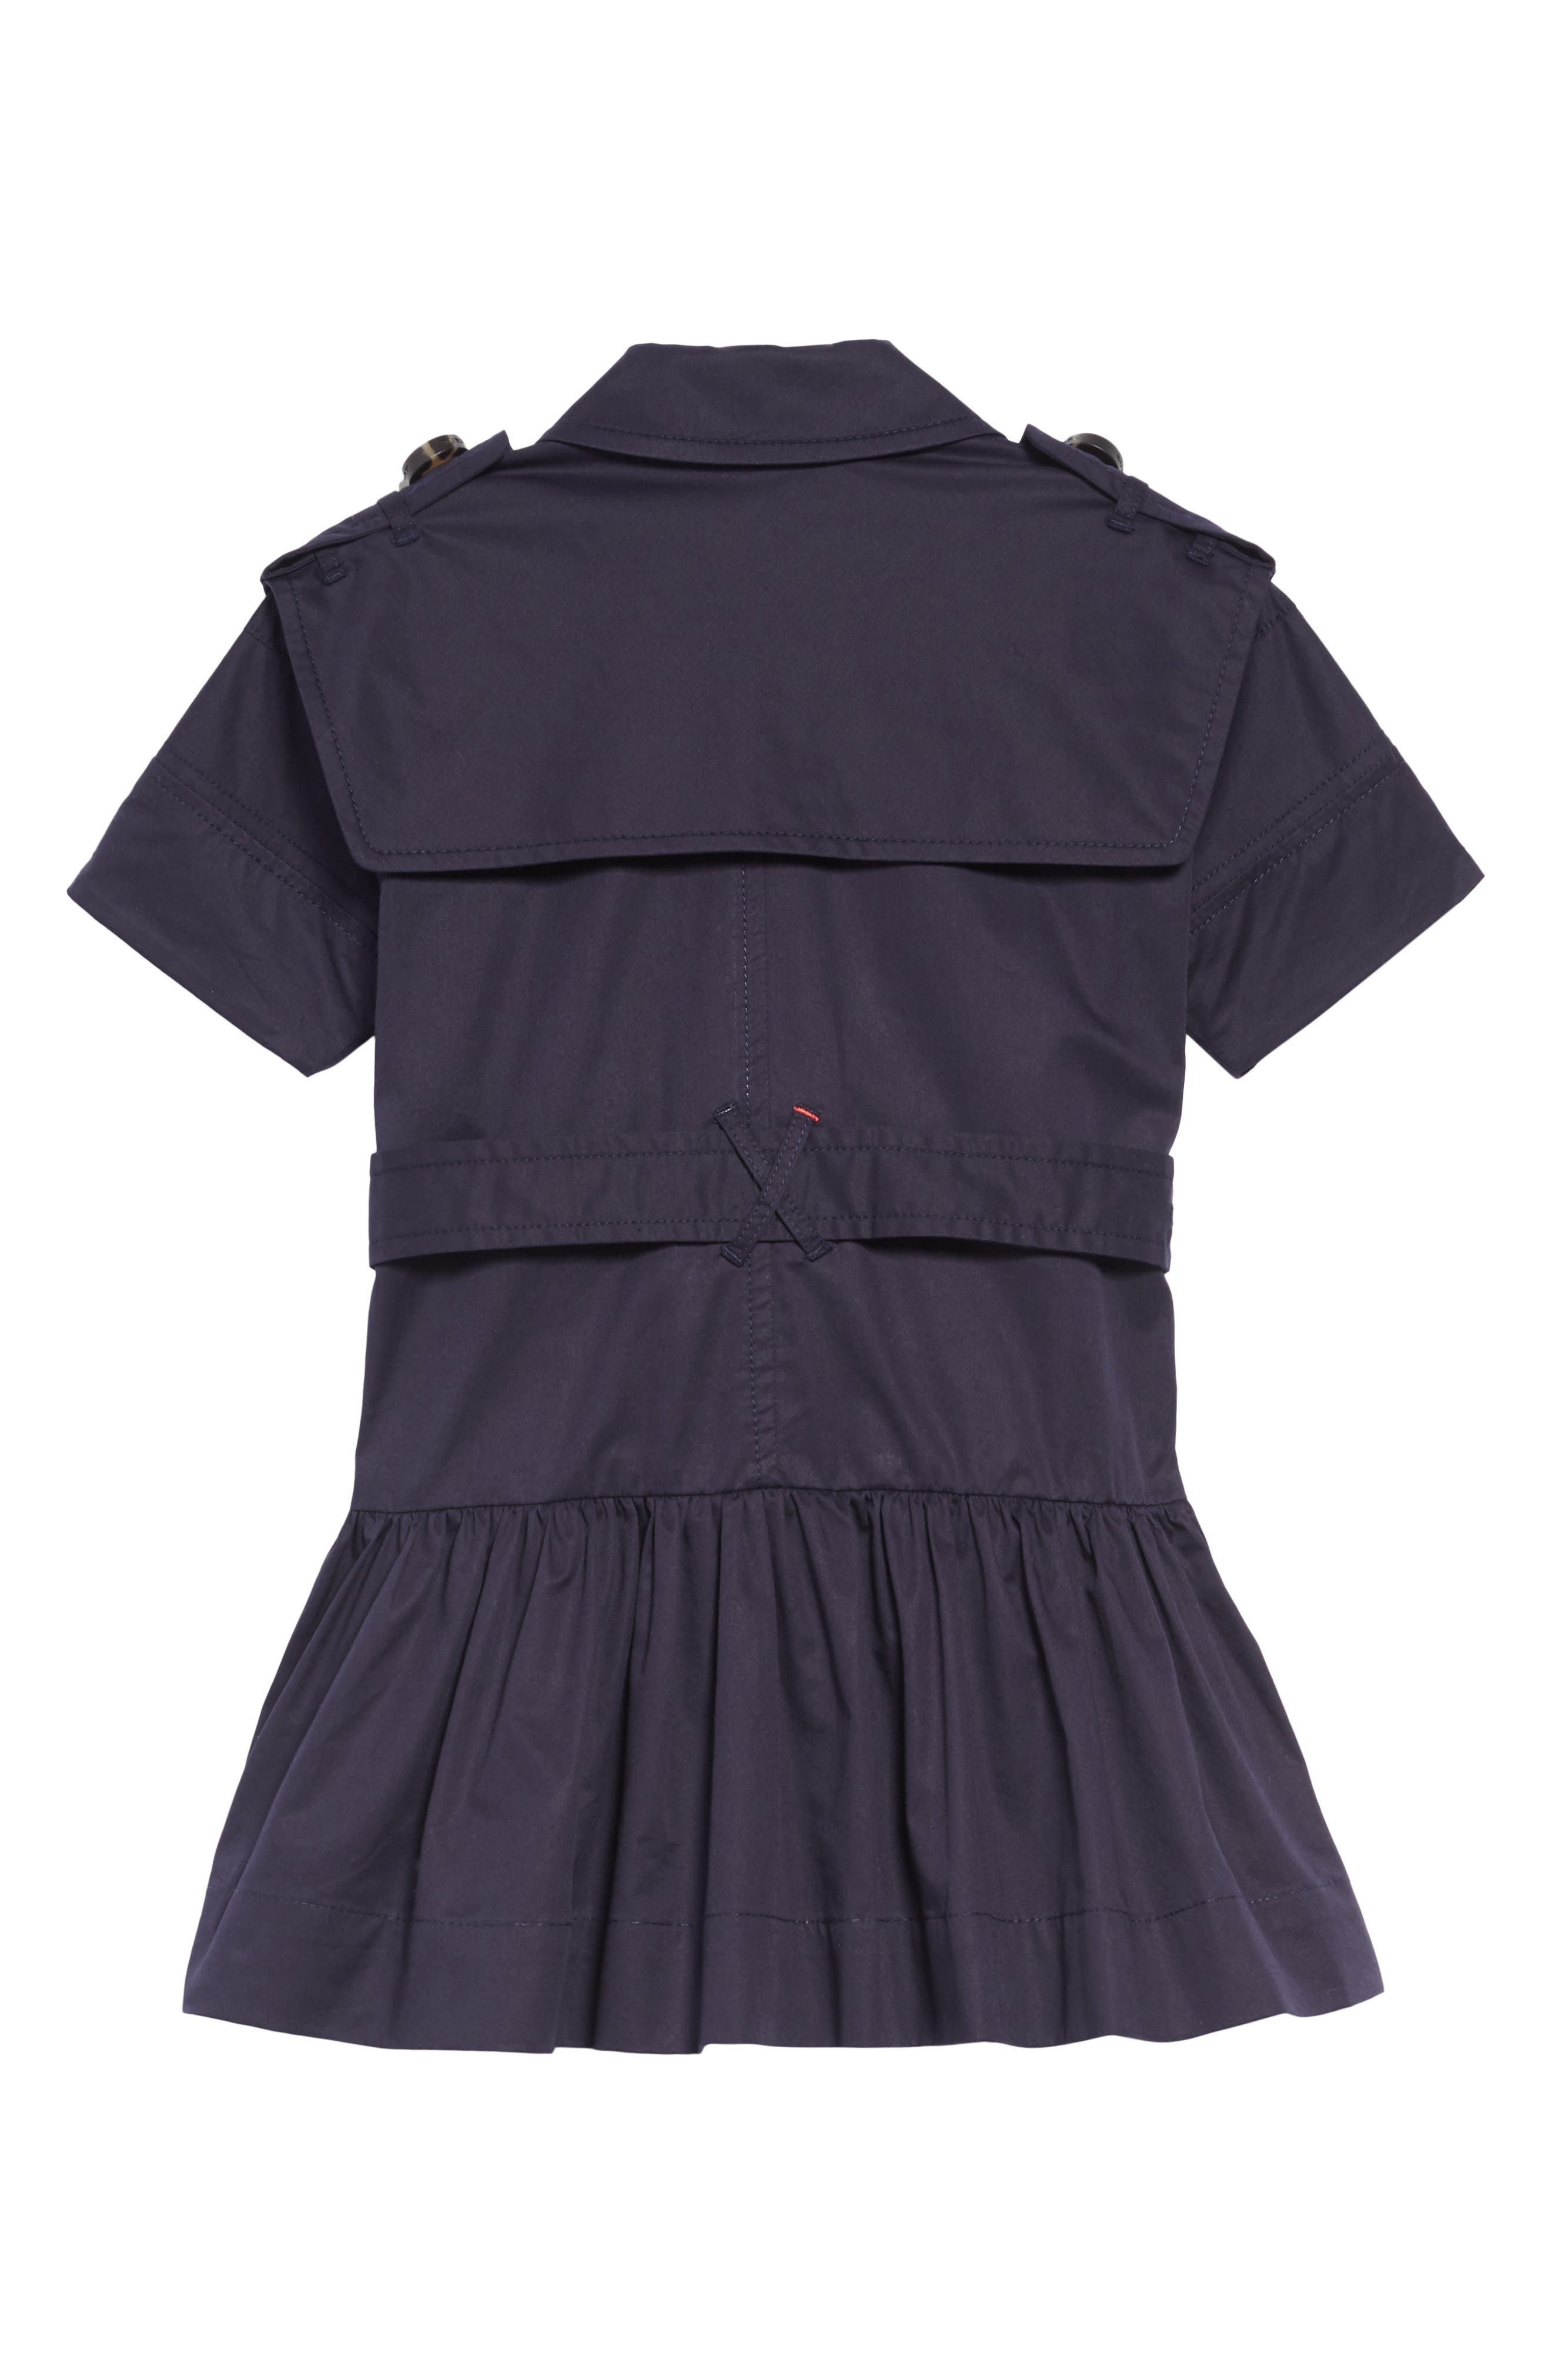 0ea31aaa5e3d Burberry for Kids Dresses  Clothing   Accessories